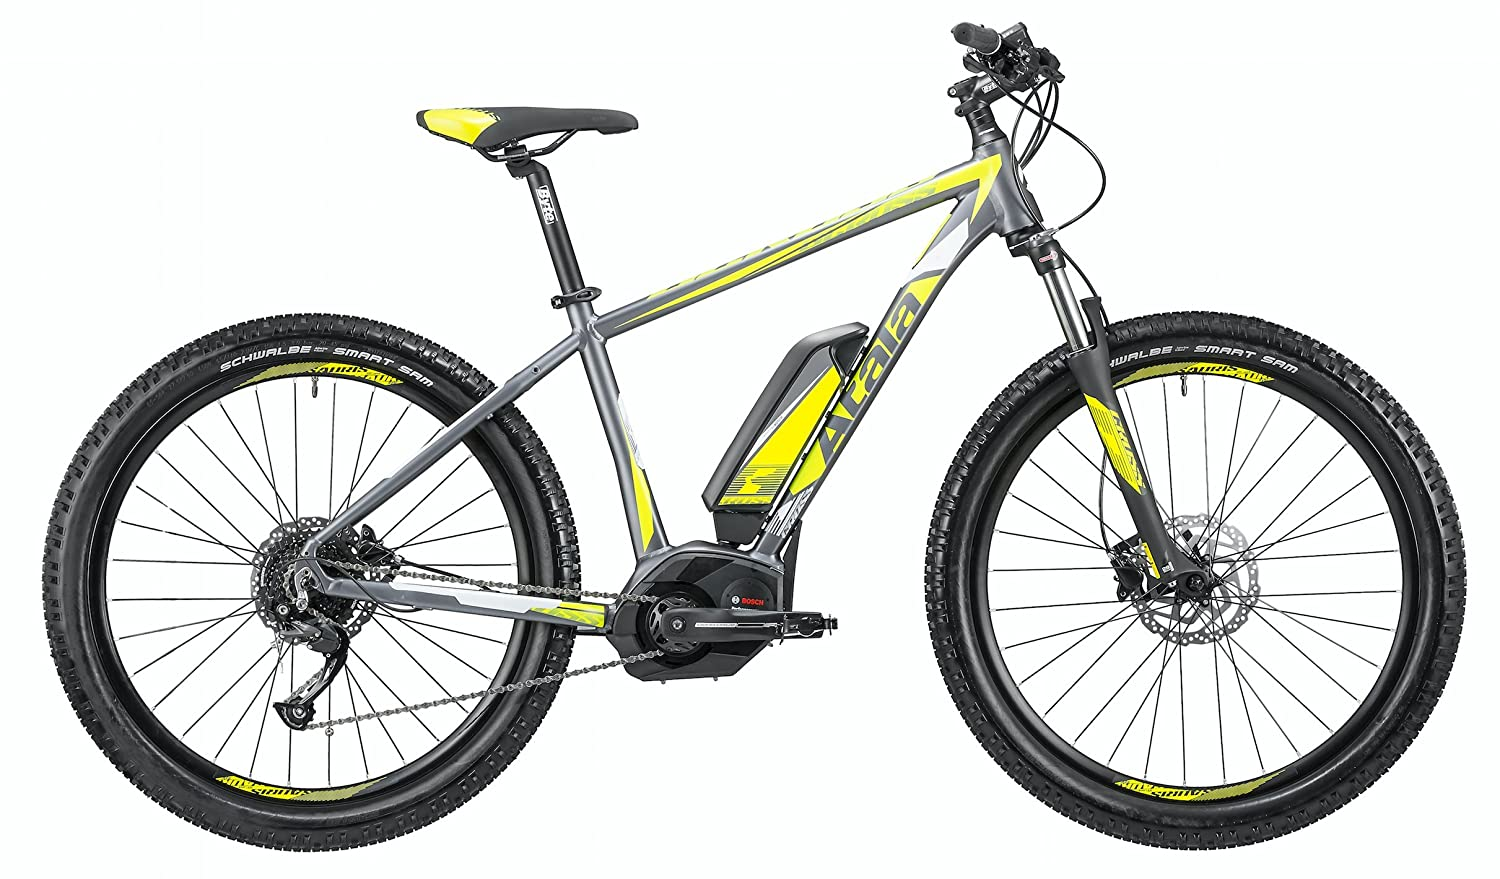 Mountain Bike eléctrica EMTB con pedalada assistita Atala b-cross CX 500 9 velocidad, color antracita - Amarillo Mate, Tamaño S-16 (150 - 170 cm): ...